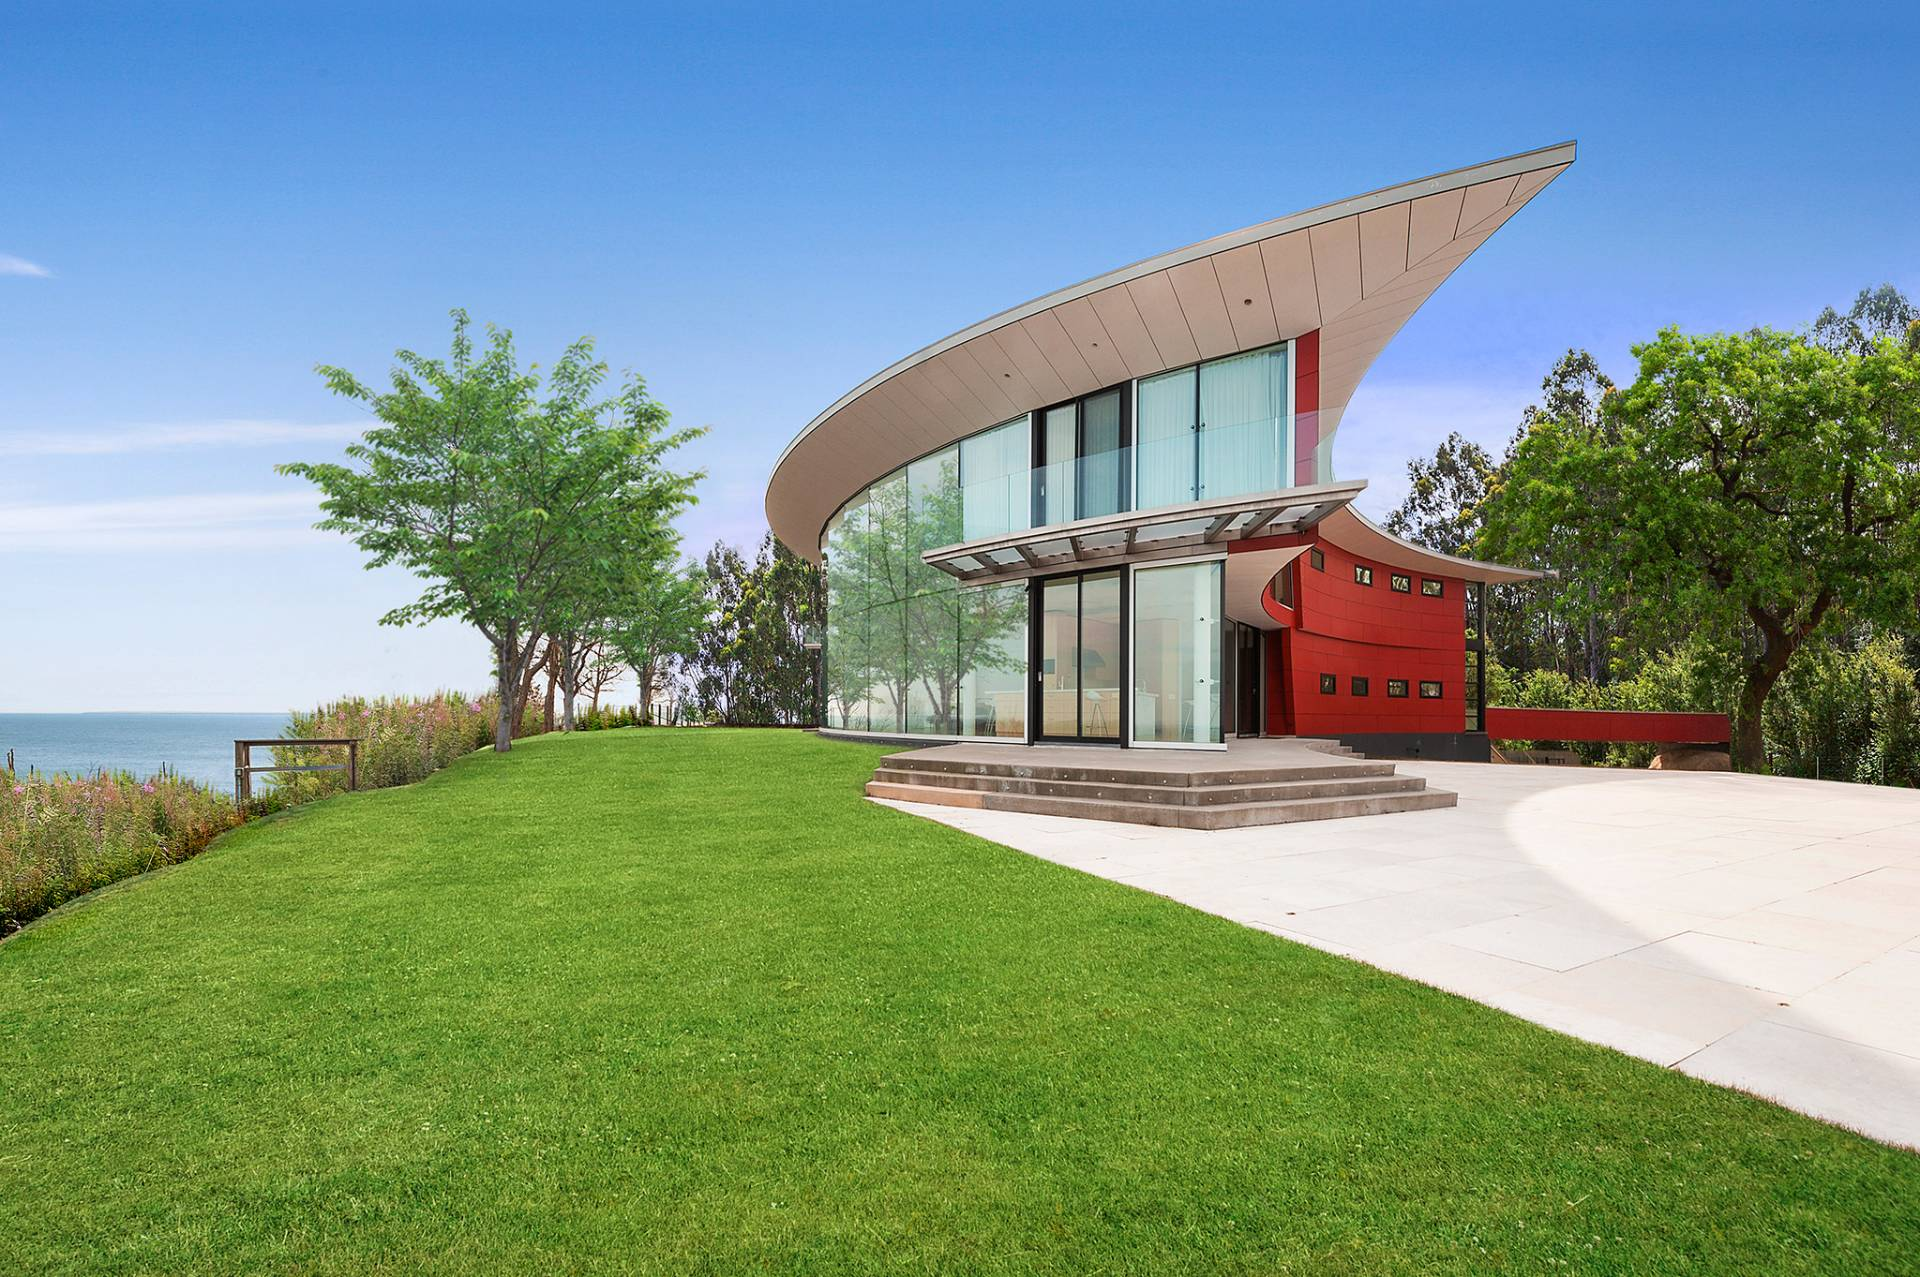 Single Family Home for Rent at Fabulous, Sun-Filled Shelter Island Modern Waterfront With Pool 179 Ram Island Drive, Shelter Island, New York